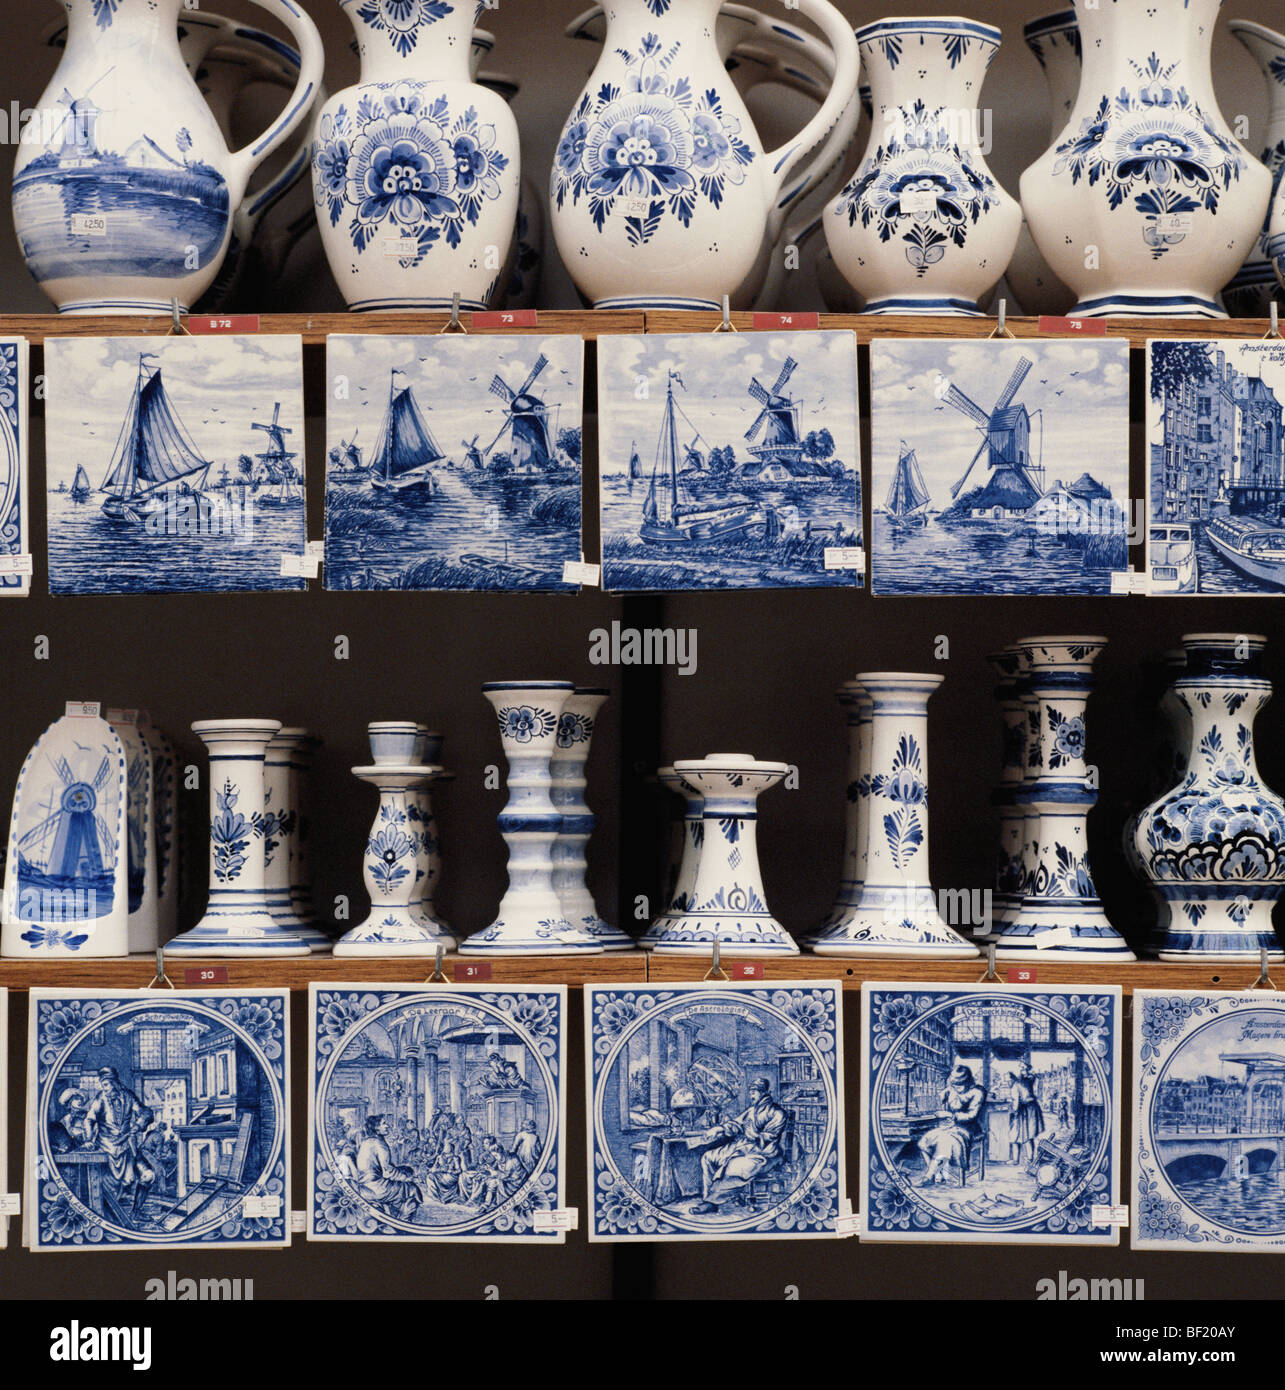 Dutch Delft Blue and White Pottery in Amsterdam market, Holland, the Netherlands - Stock Image